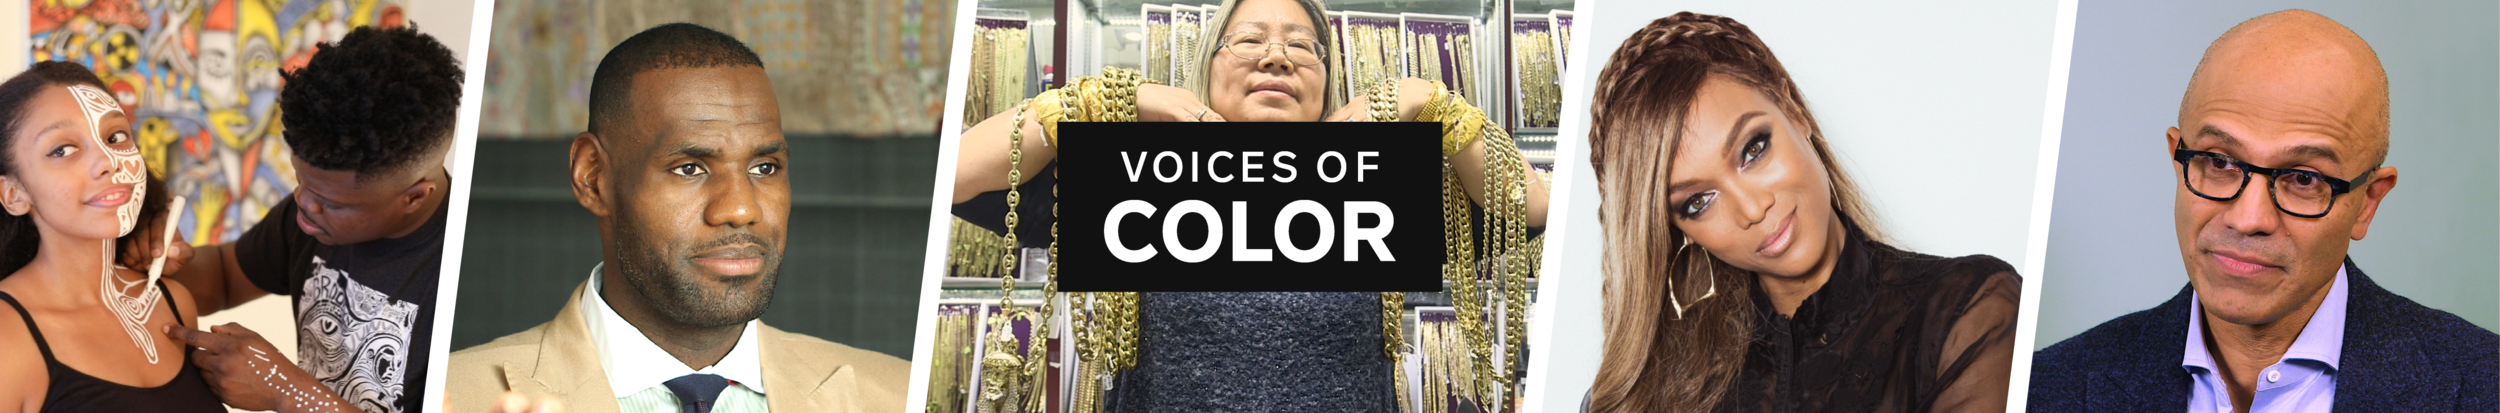 voices-of-color-youtube-cover-photo.png